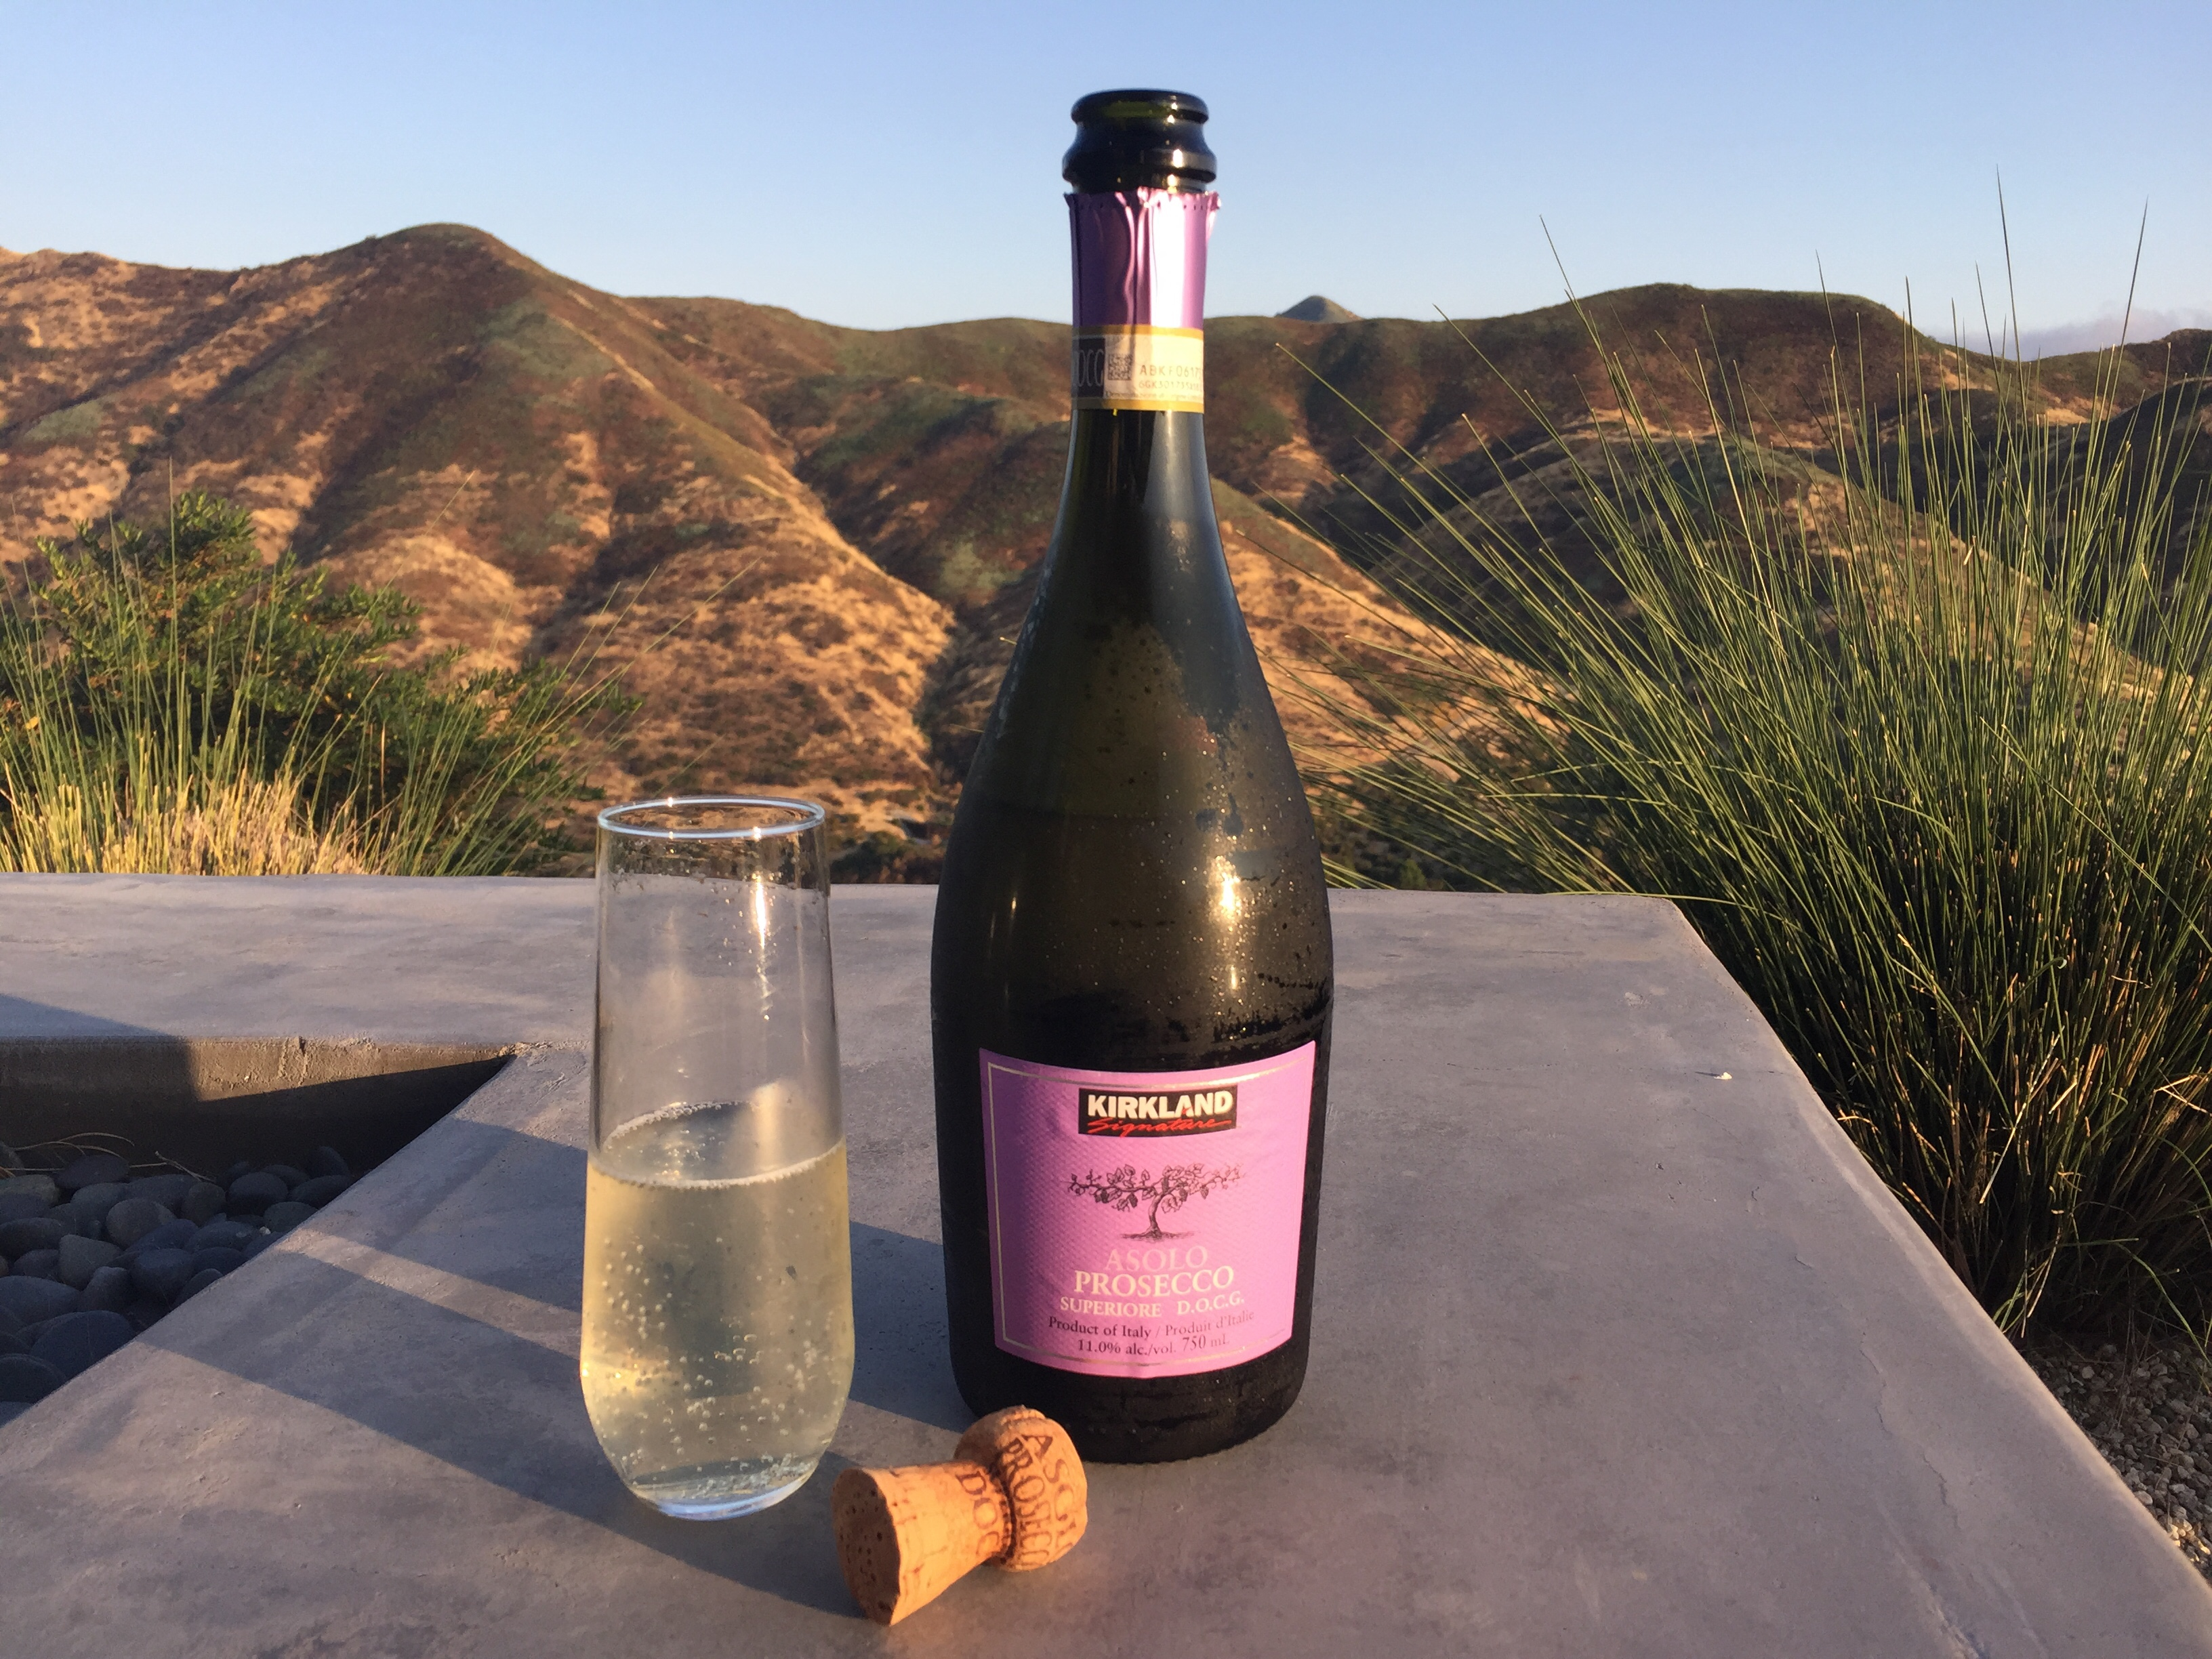 Bottle of Kirkland Signature DOGC Prosecco and the wine shown in a glass.